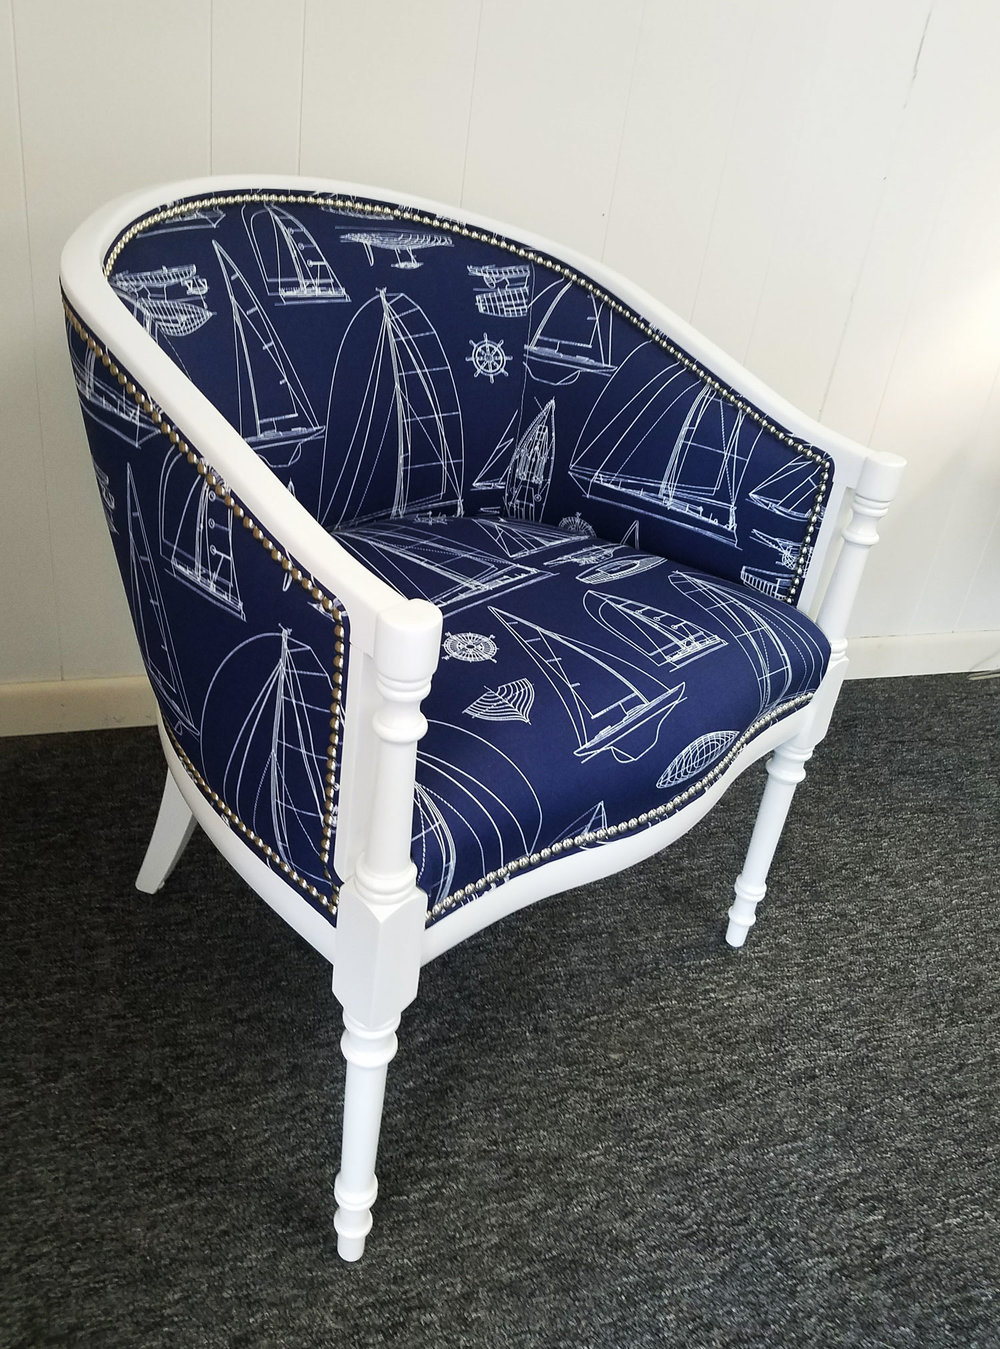 After all repairs were made, and the interior of the cushion and springs replaced, this sleek Captain-style chair was recovered in a favorite fabric and guaranteed for life.  Check out our  blog  to see the whole process of the nautical chairs!